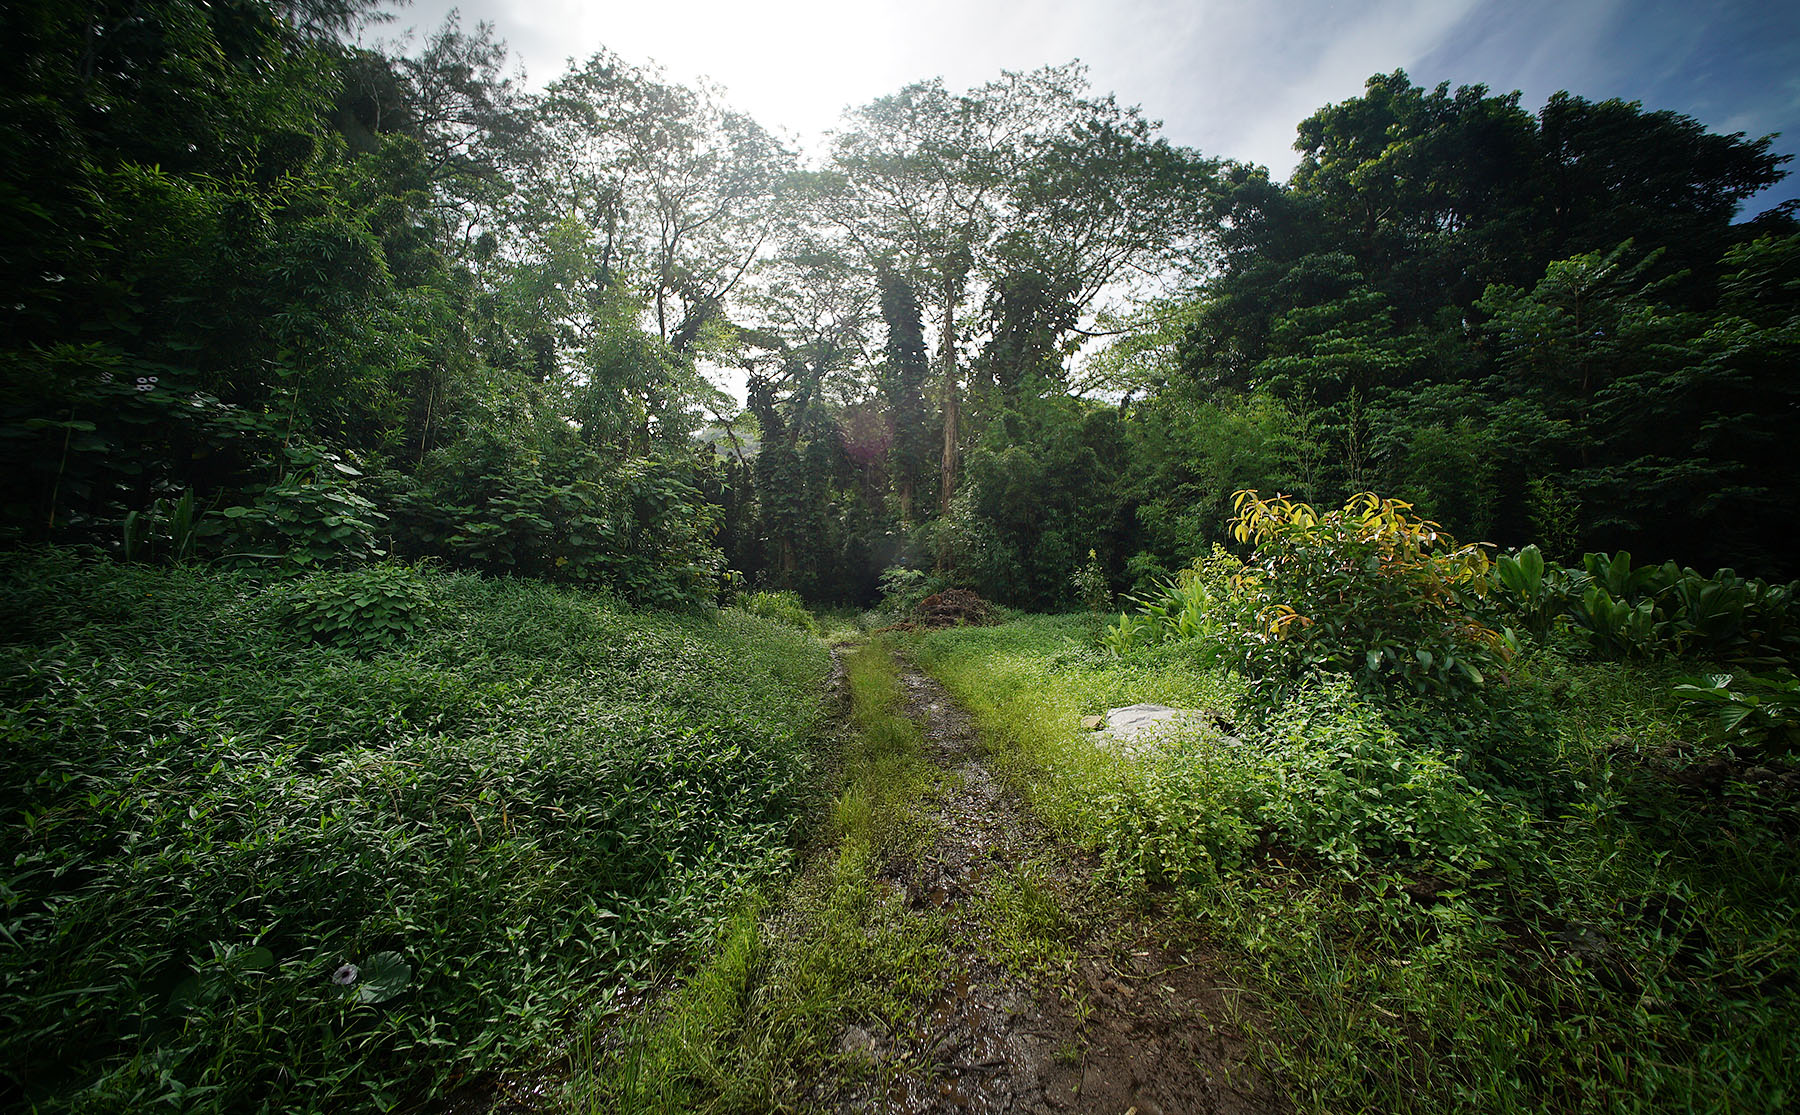 <p>Members of President Obama&#8217;s Advisory Commission on Asian Americans and Pacific Islanders visited the Ho'oulu 'Aina Nature Park in Kalihi Valley on Wednesday. The park sits on more than 100 acres of land that was spared from development.</p>